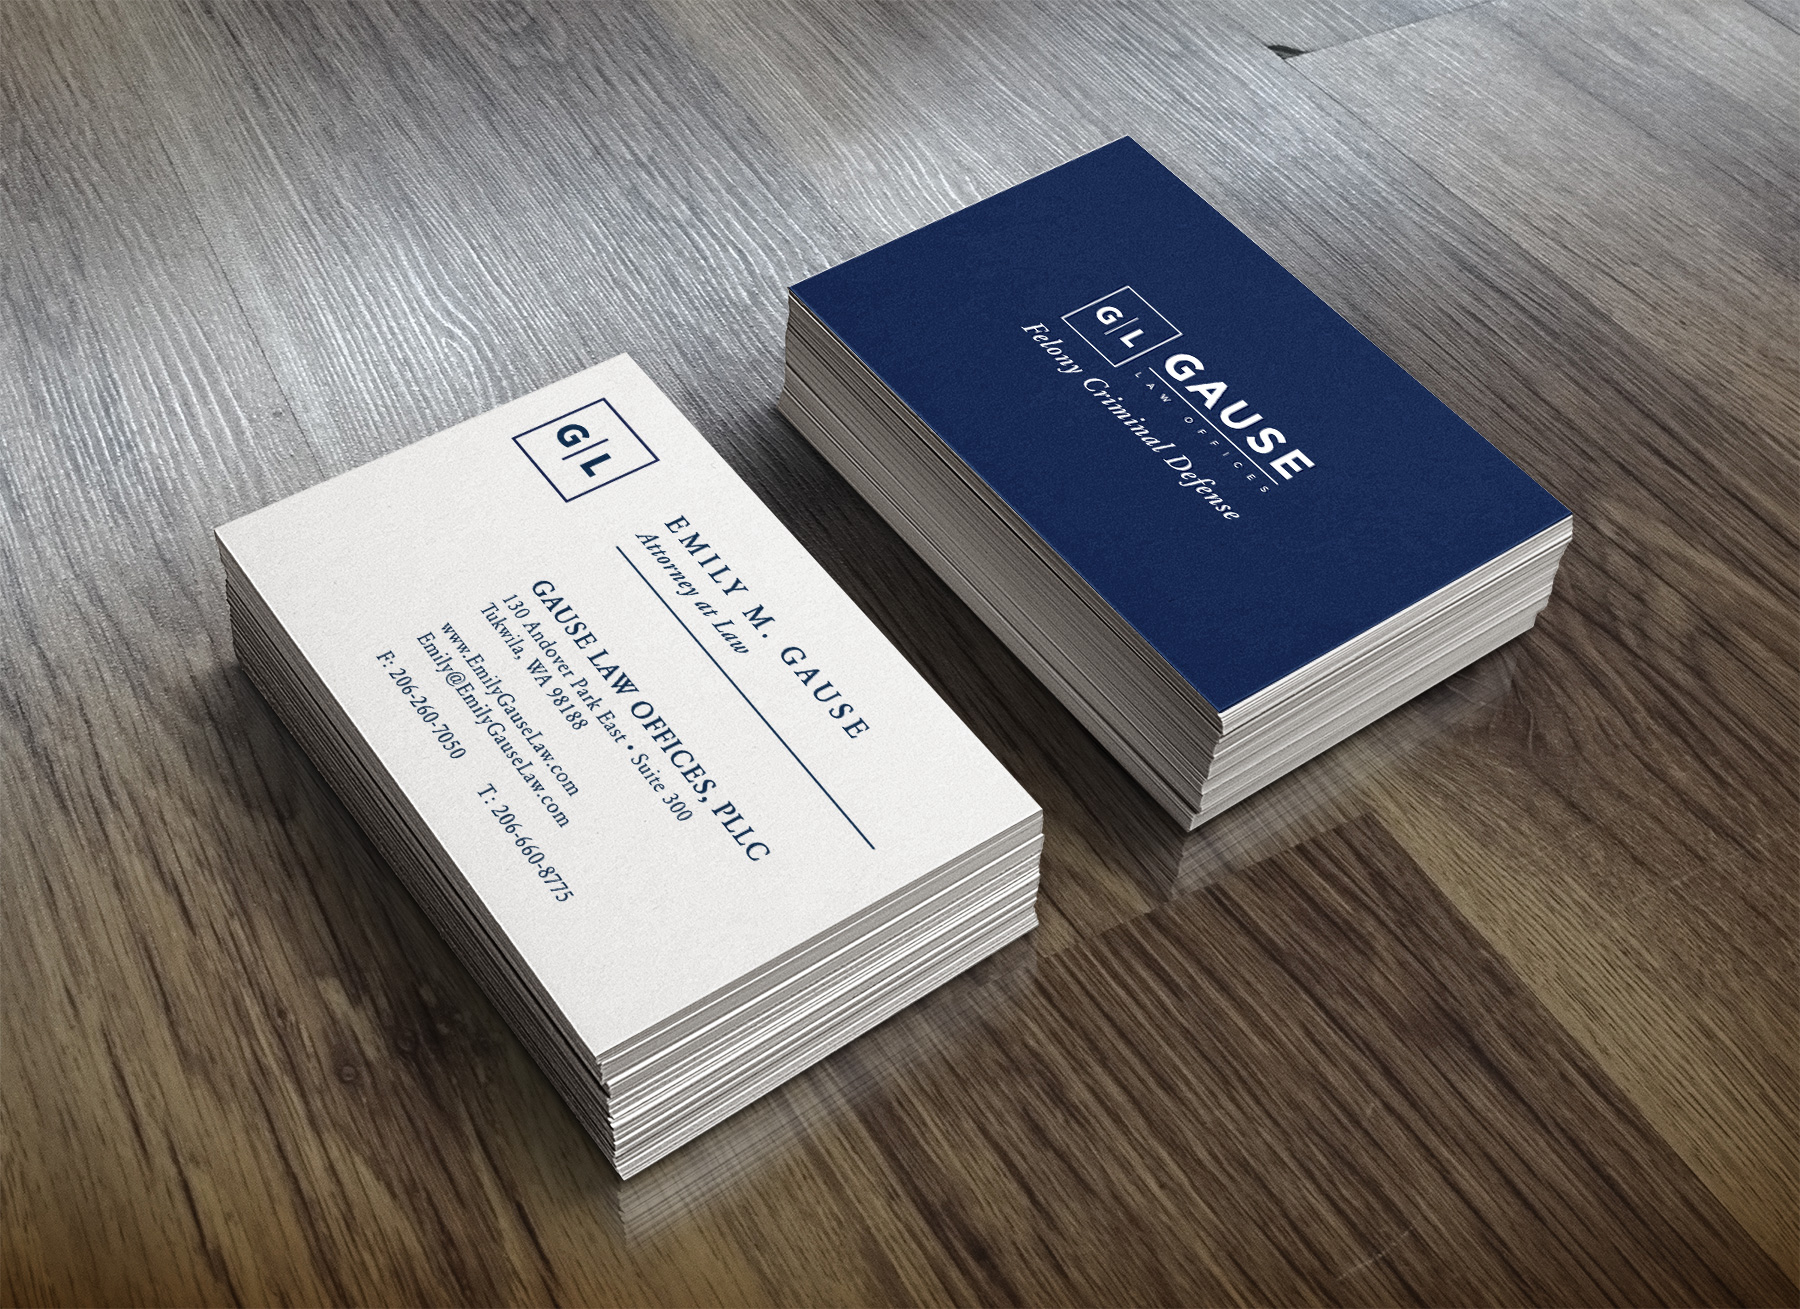 Logo design and business card layouts for Gause Law Offices